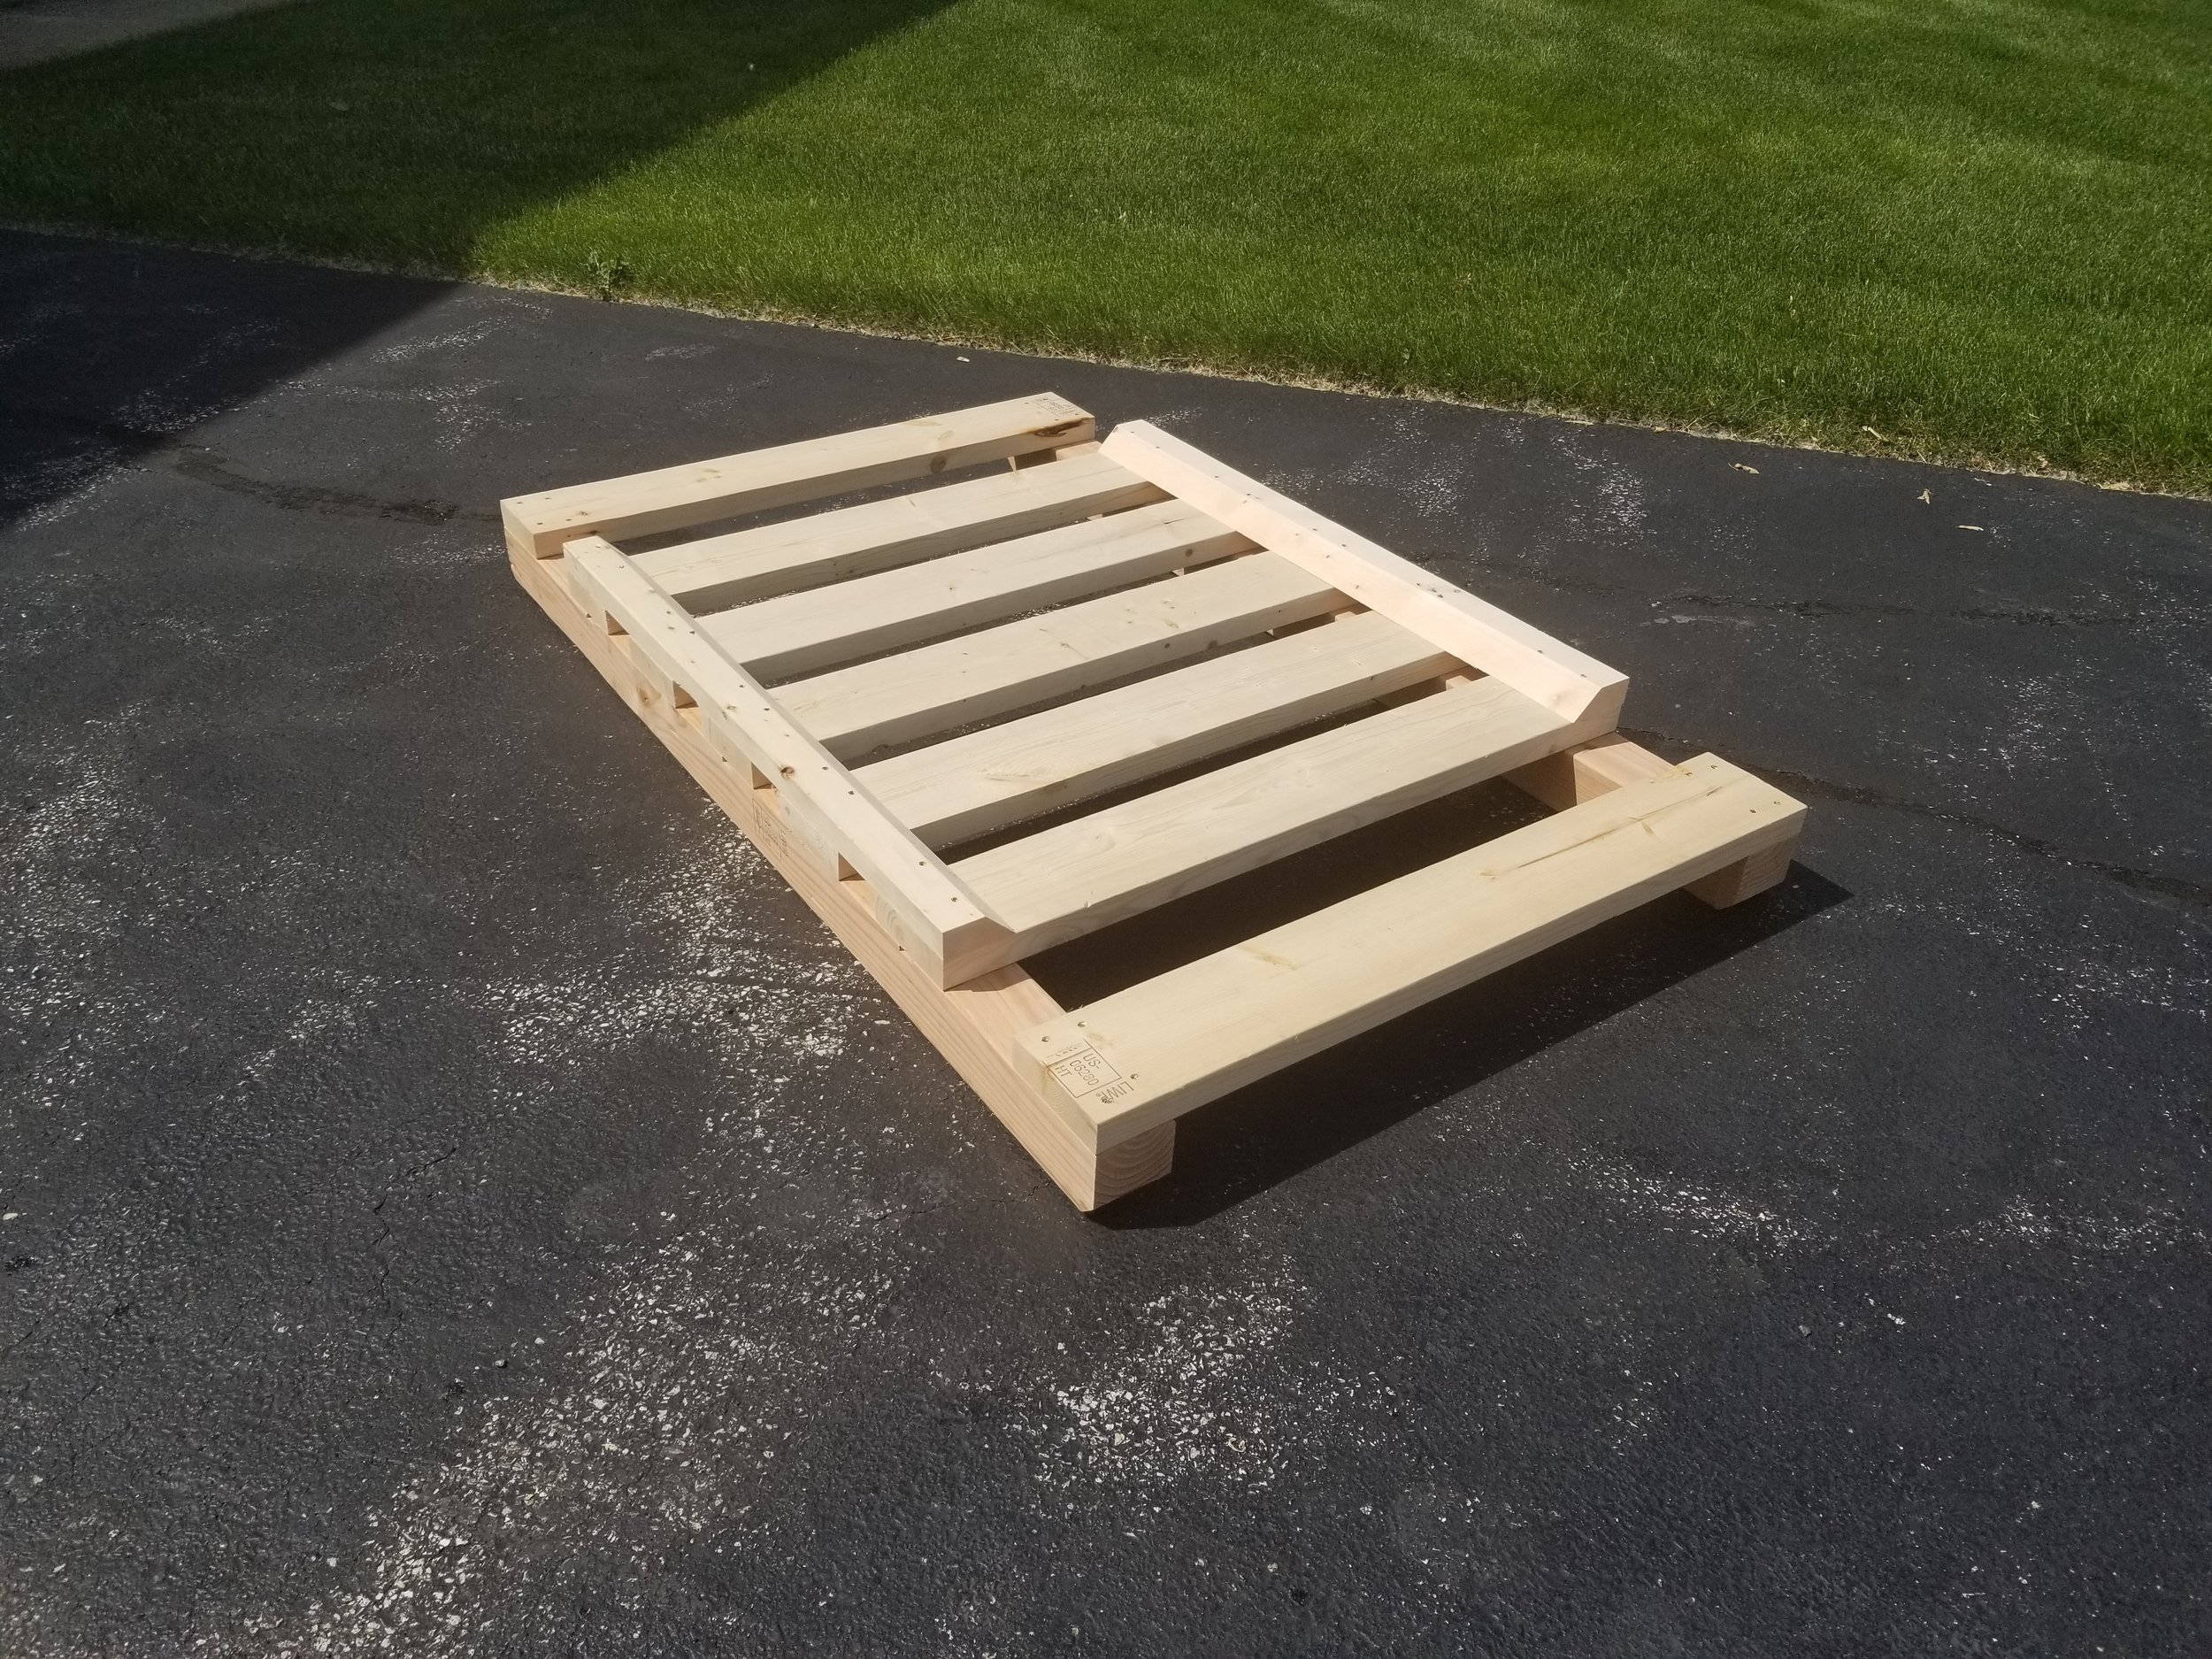 cylinder pallets - Heavy duty pallet designed to hold multiple pieces of cylindrical shaped cargo. ie: Tubing, Piping, Gas cylinders, Steel bars, etc.There are special notches on the sides for securely banding a stack of cylinders to the skids and then angled lumber keepers to, yep, KEEP them there!